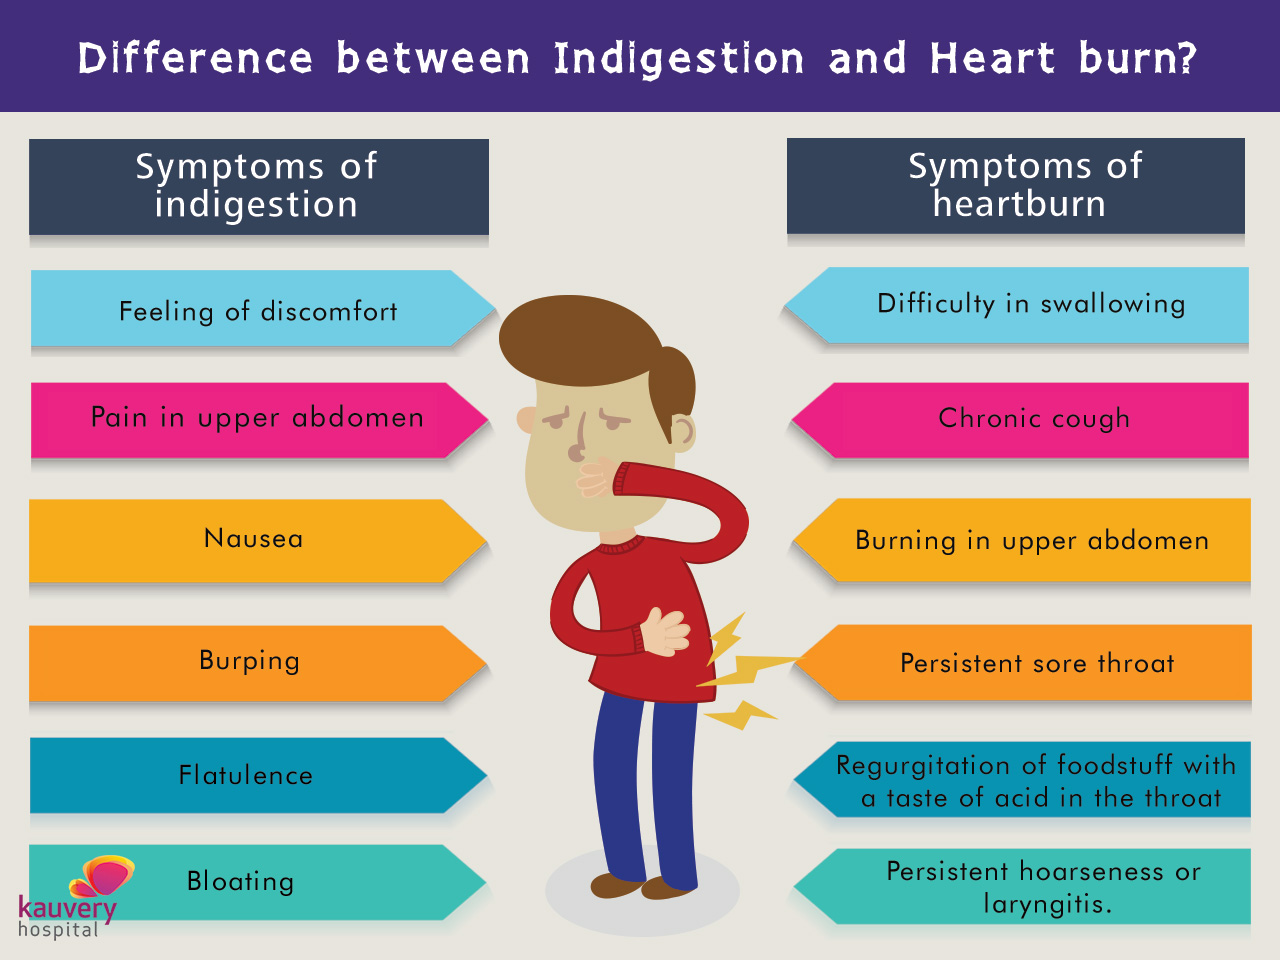 Symptoms of Indigestion and Heartburn